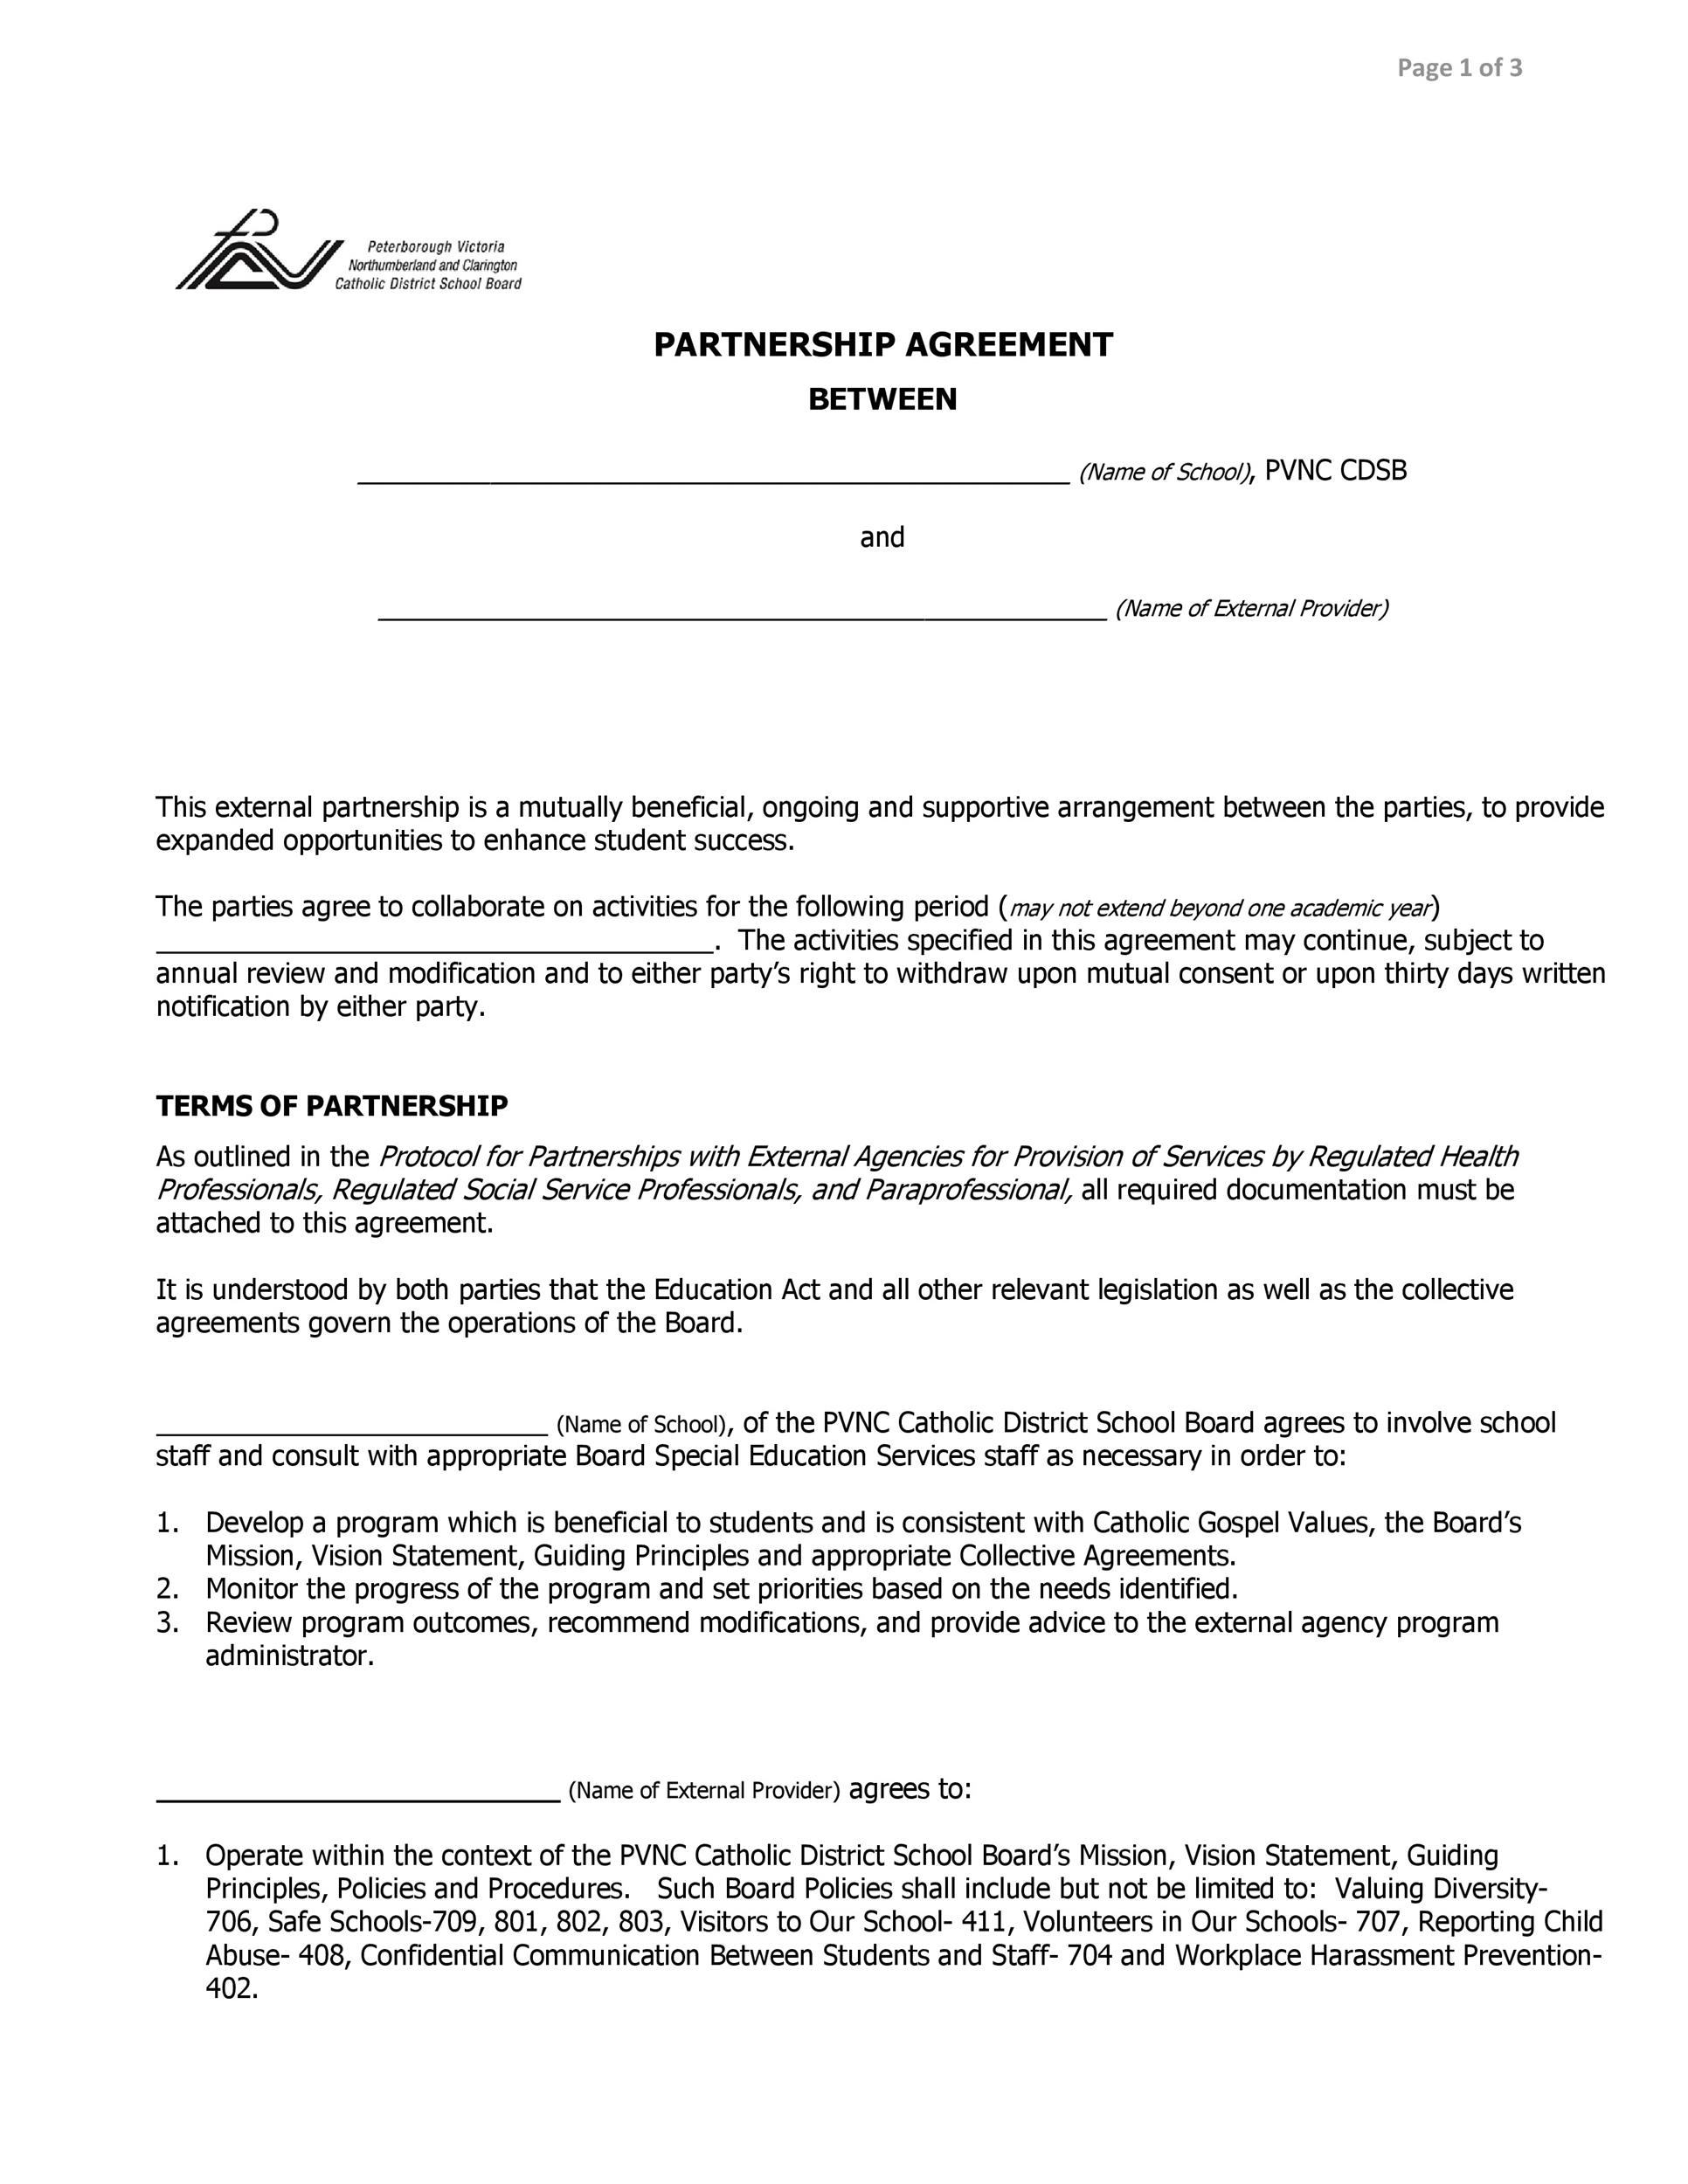 40 FREE Partnership Agreement Templates Business General